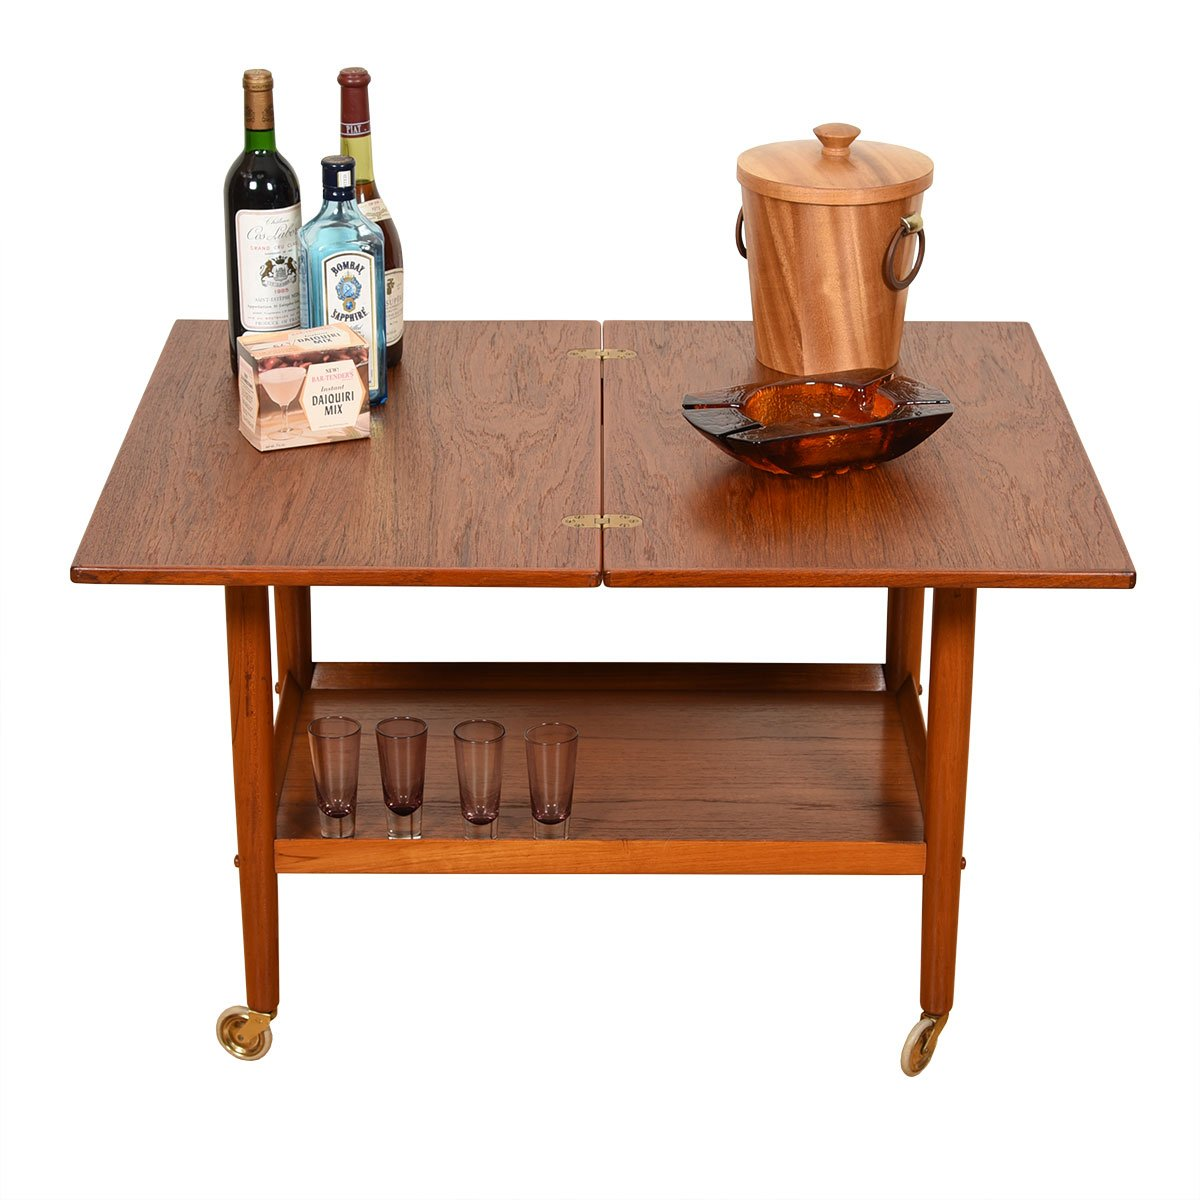 'Flip & Sip' Expanding Danish Modern Teak Bar Cart / Serving Table